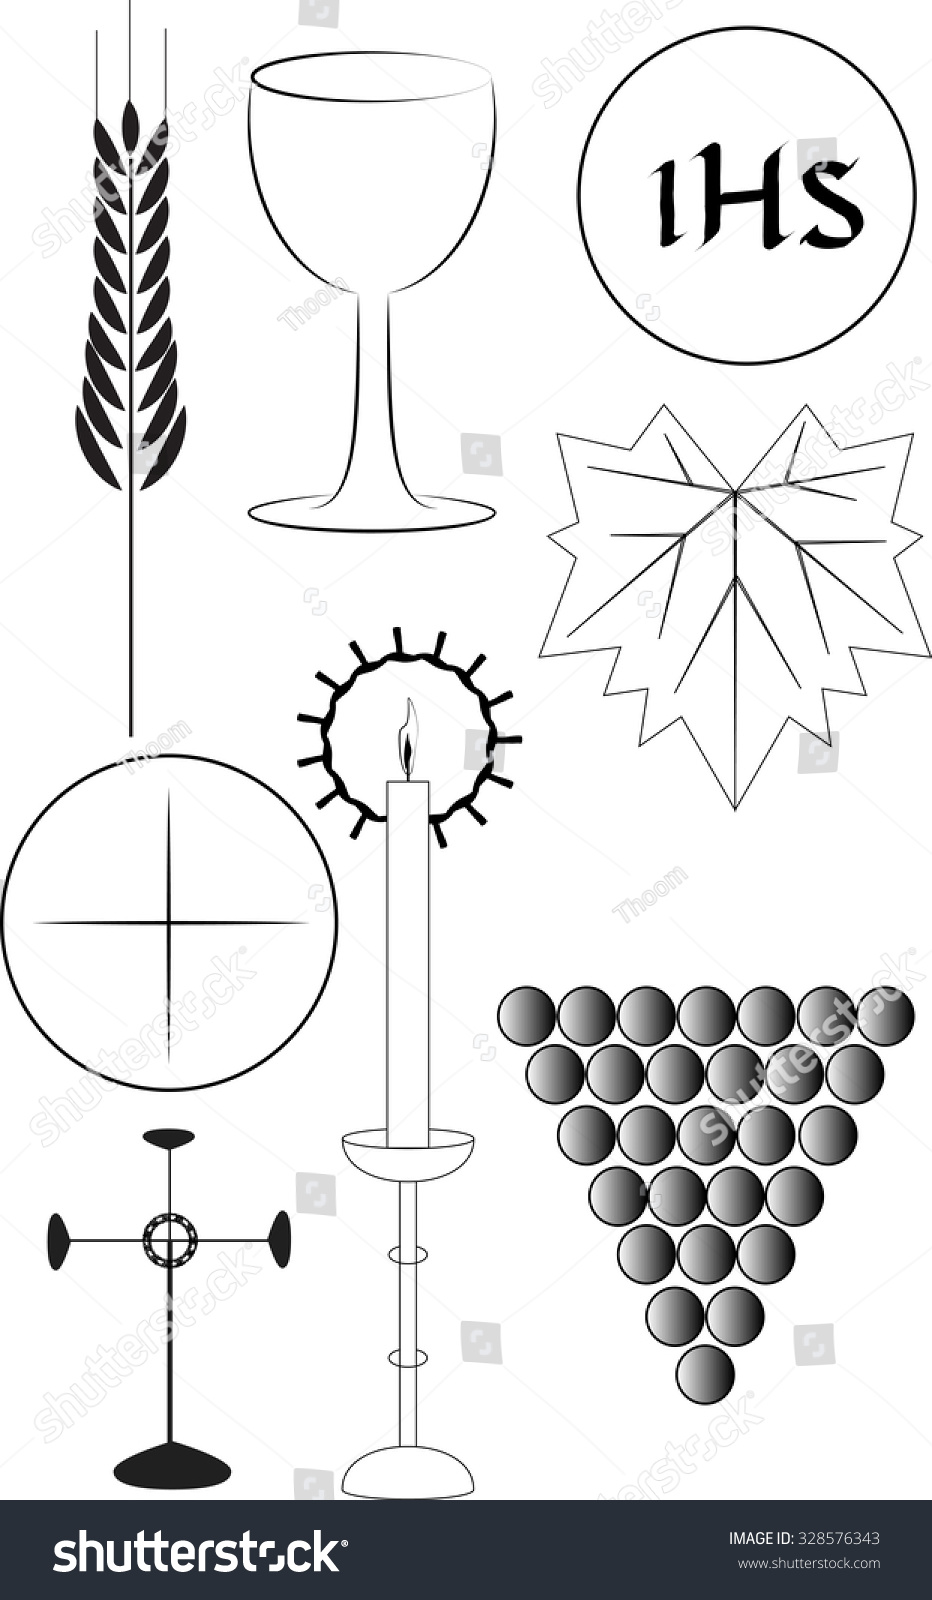 Drawing Lines Between Html Elements : Eucharist symbols graphic elements black and white line